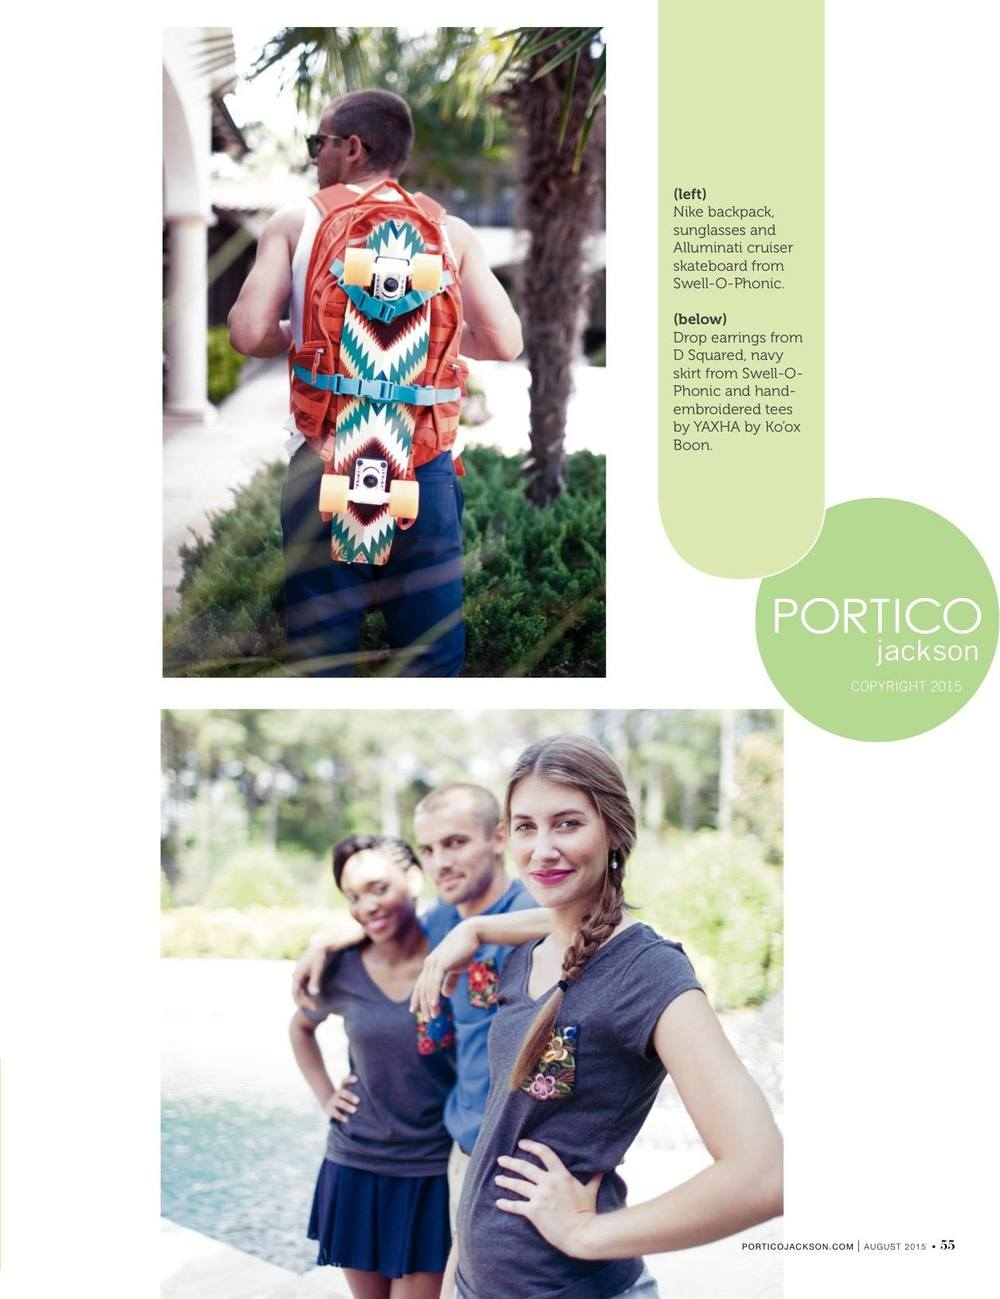 YAXHA Bordados featured in Portico JACKSON magazine, August 2015